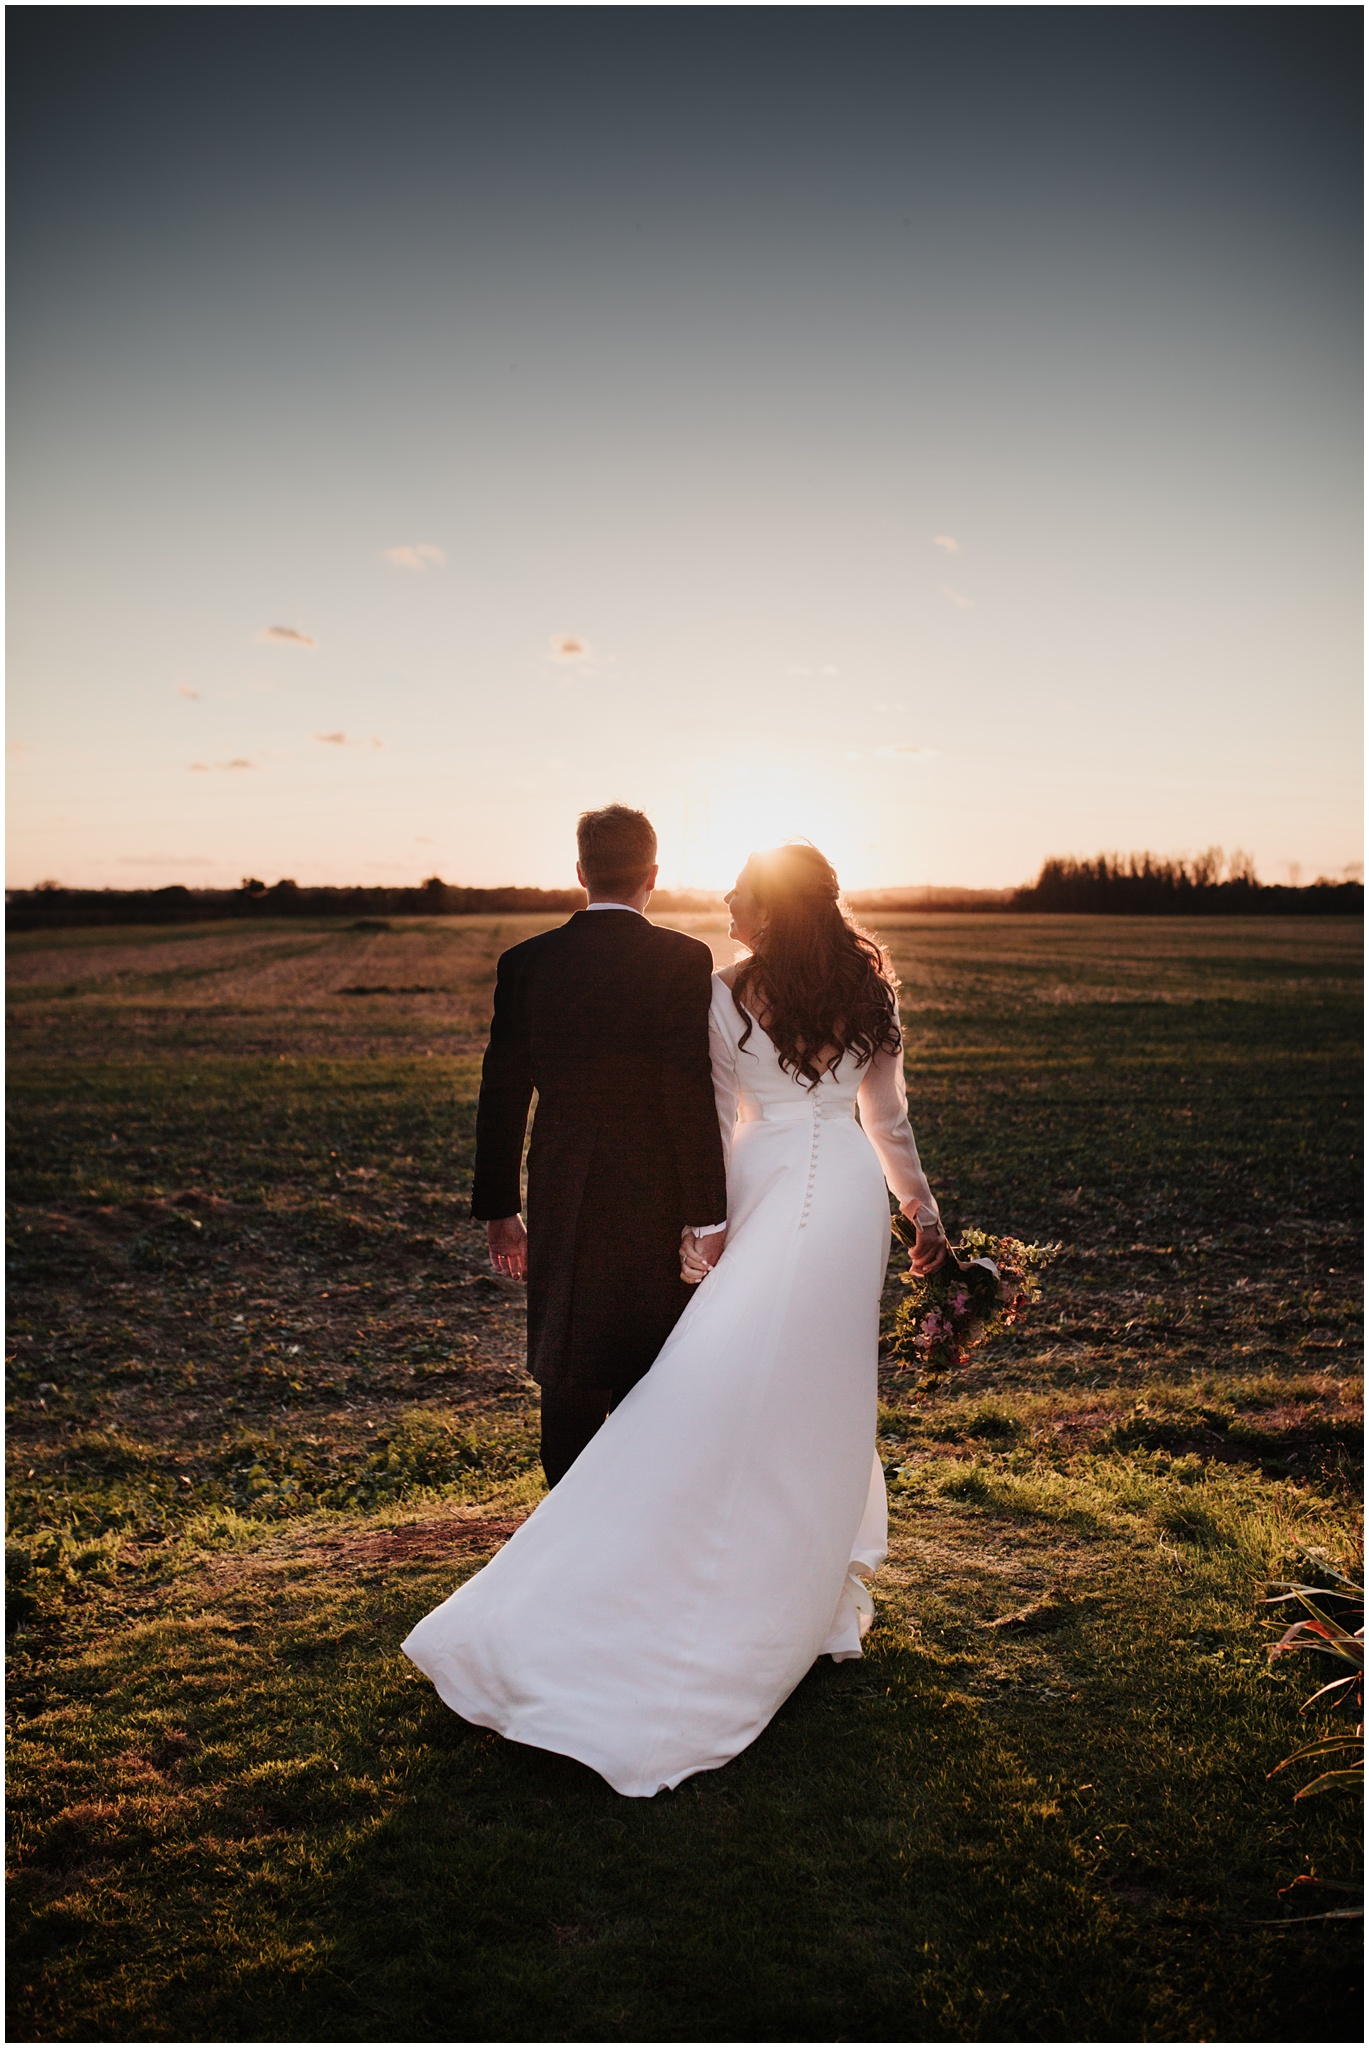 Sunset image with bride and groom